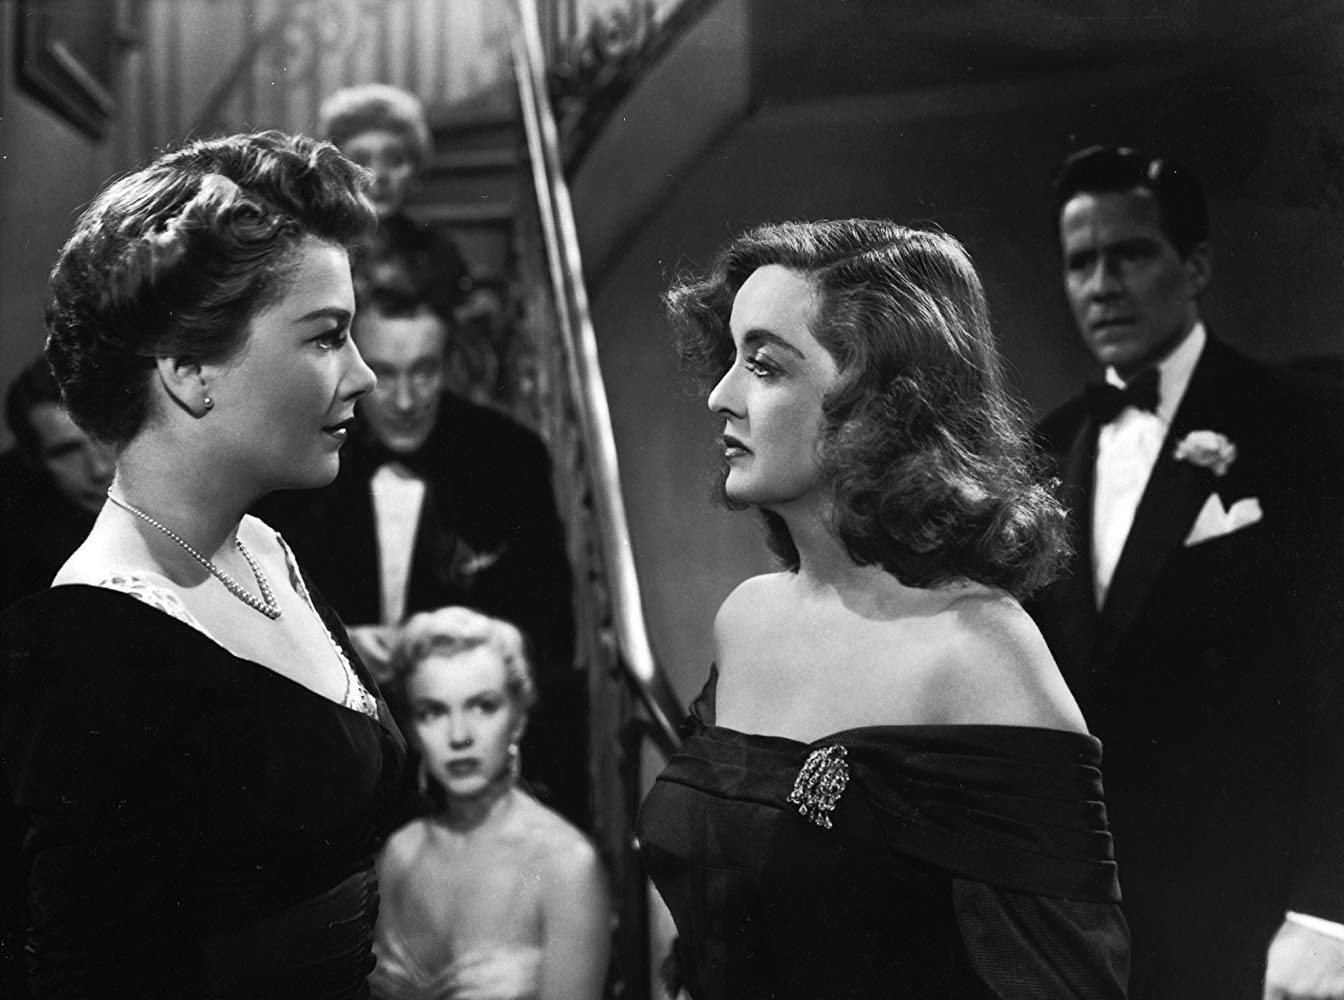 All About eve IMDB 1.jpg